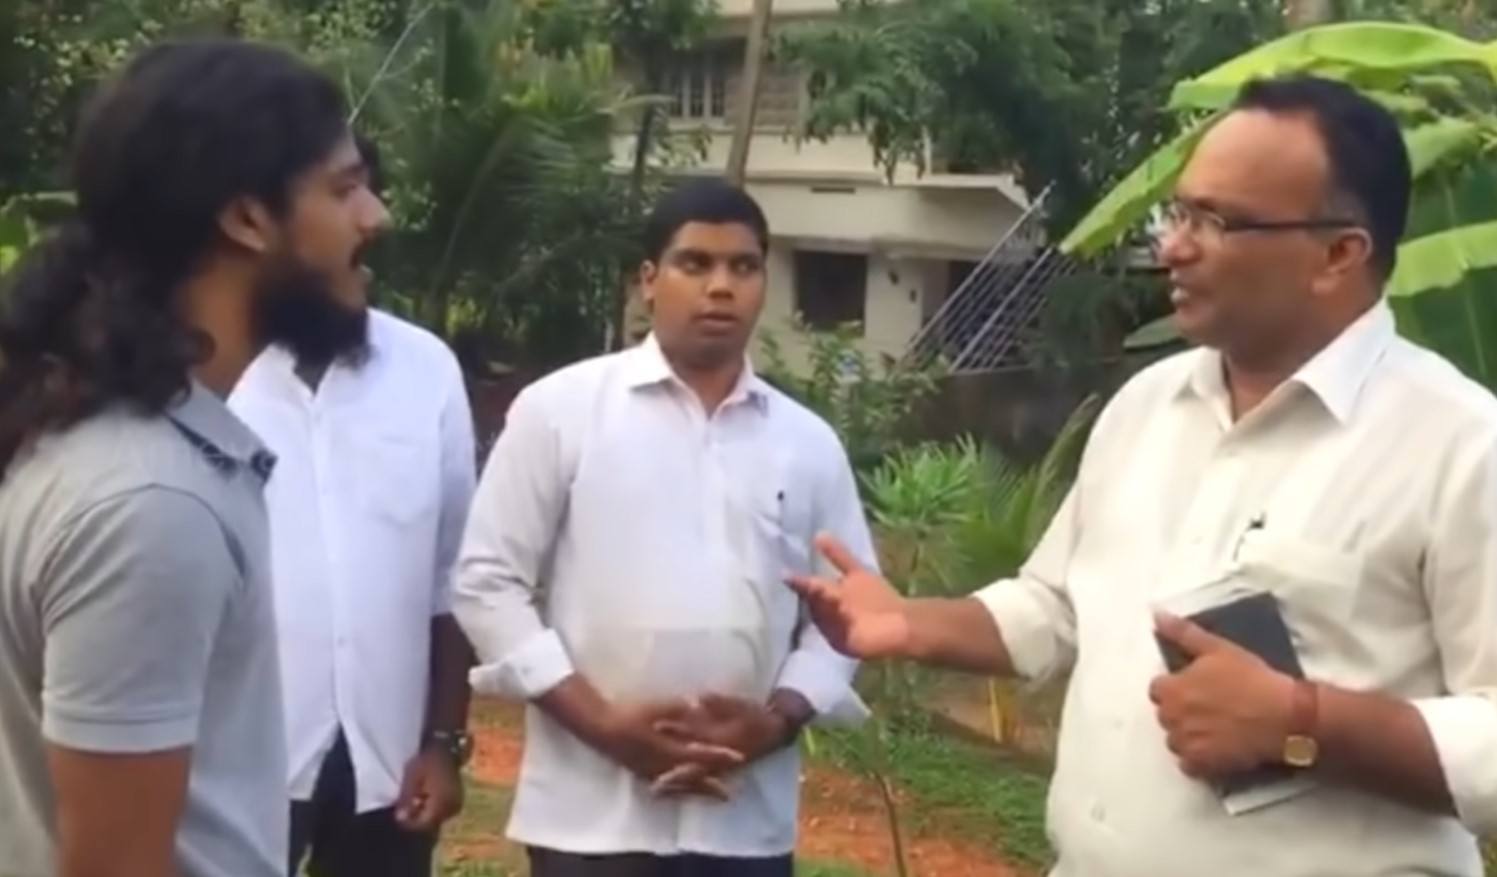 Kerala anti-conversion activist expresses regret over 2018 assault